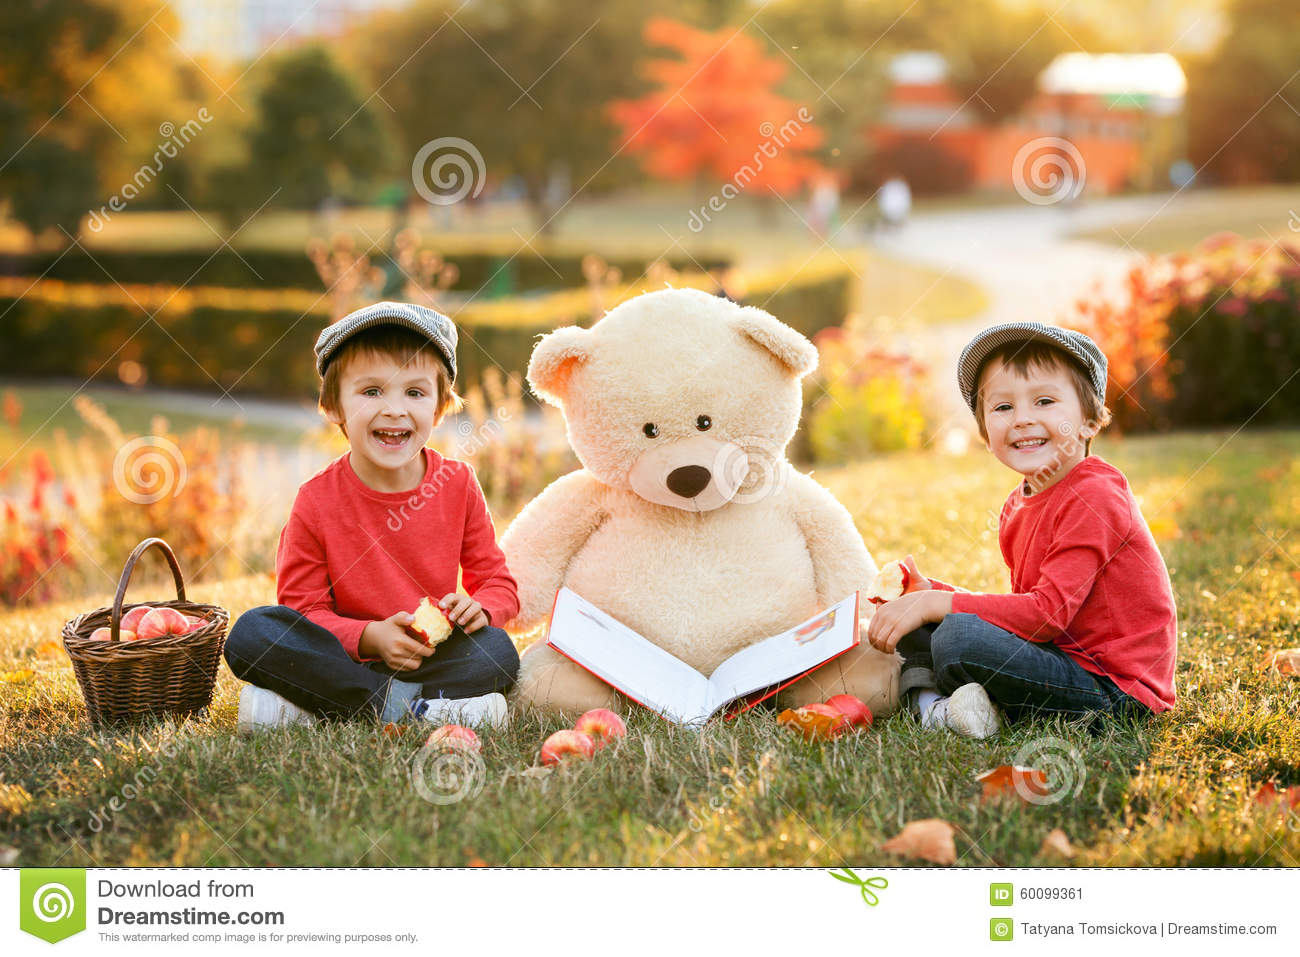 Two adorable little boys with his teddy bear friend in the park